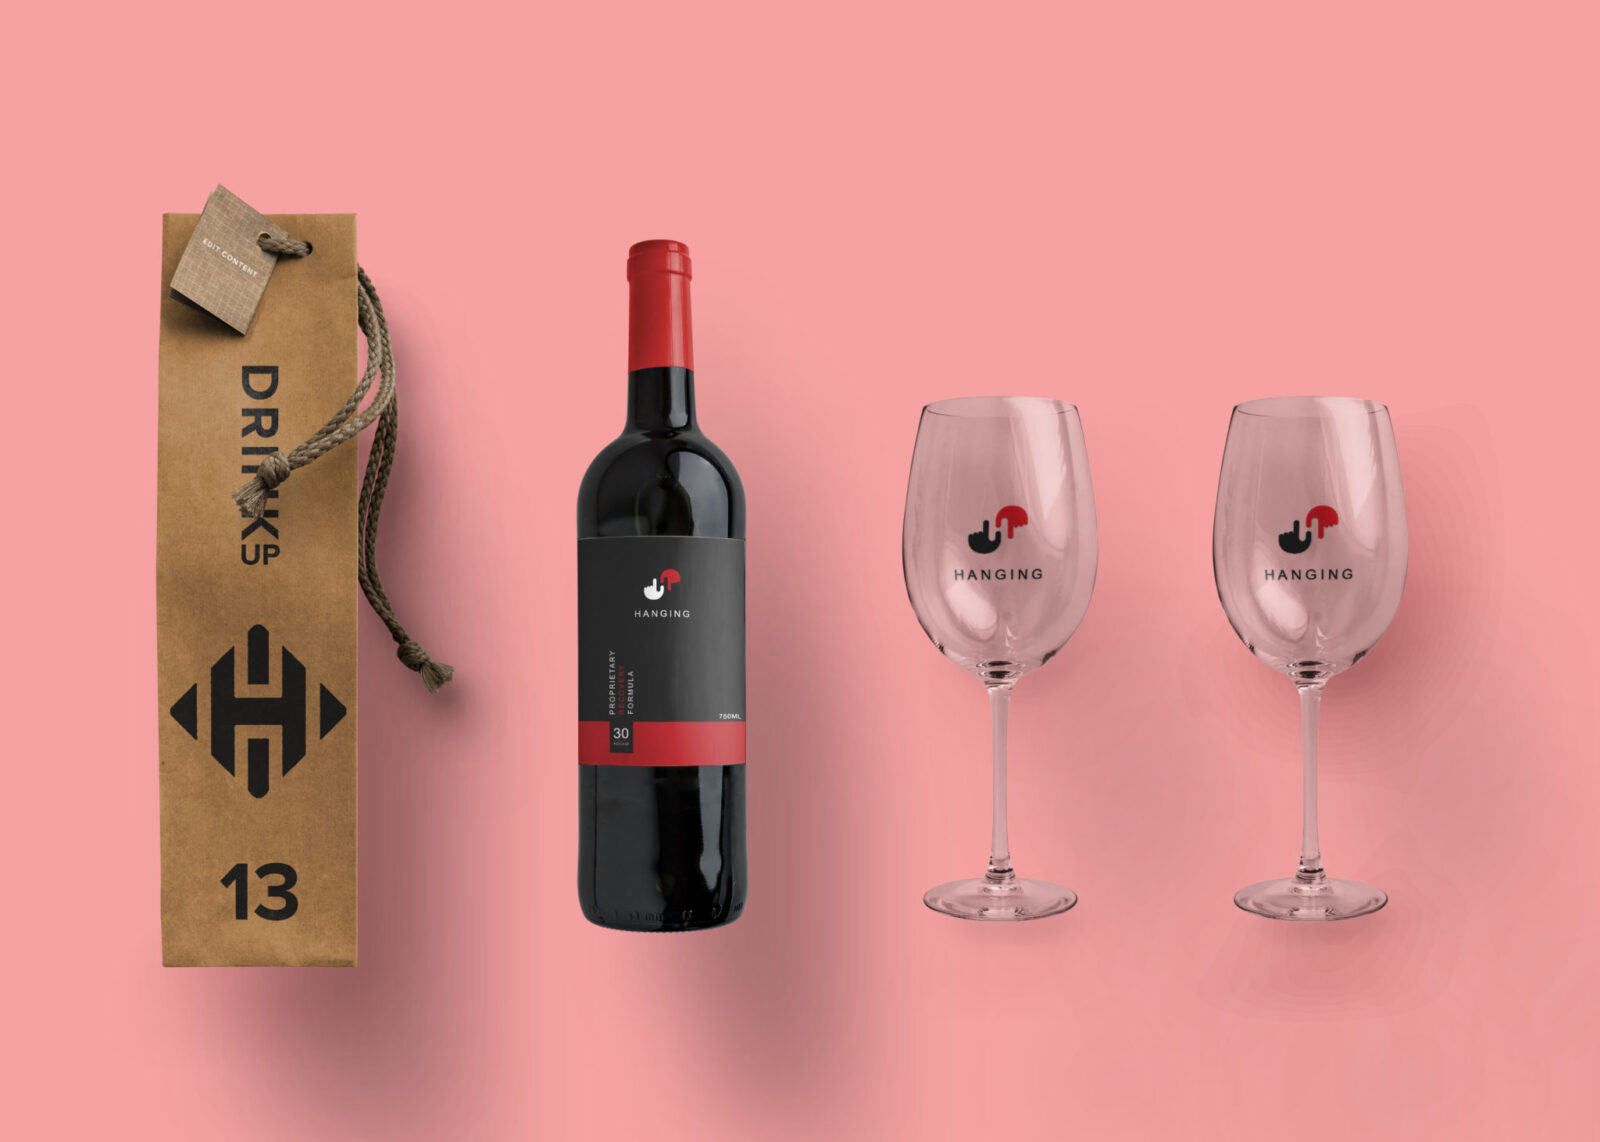 Prime Hanging Wine Bottle Label Mockup